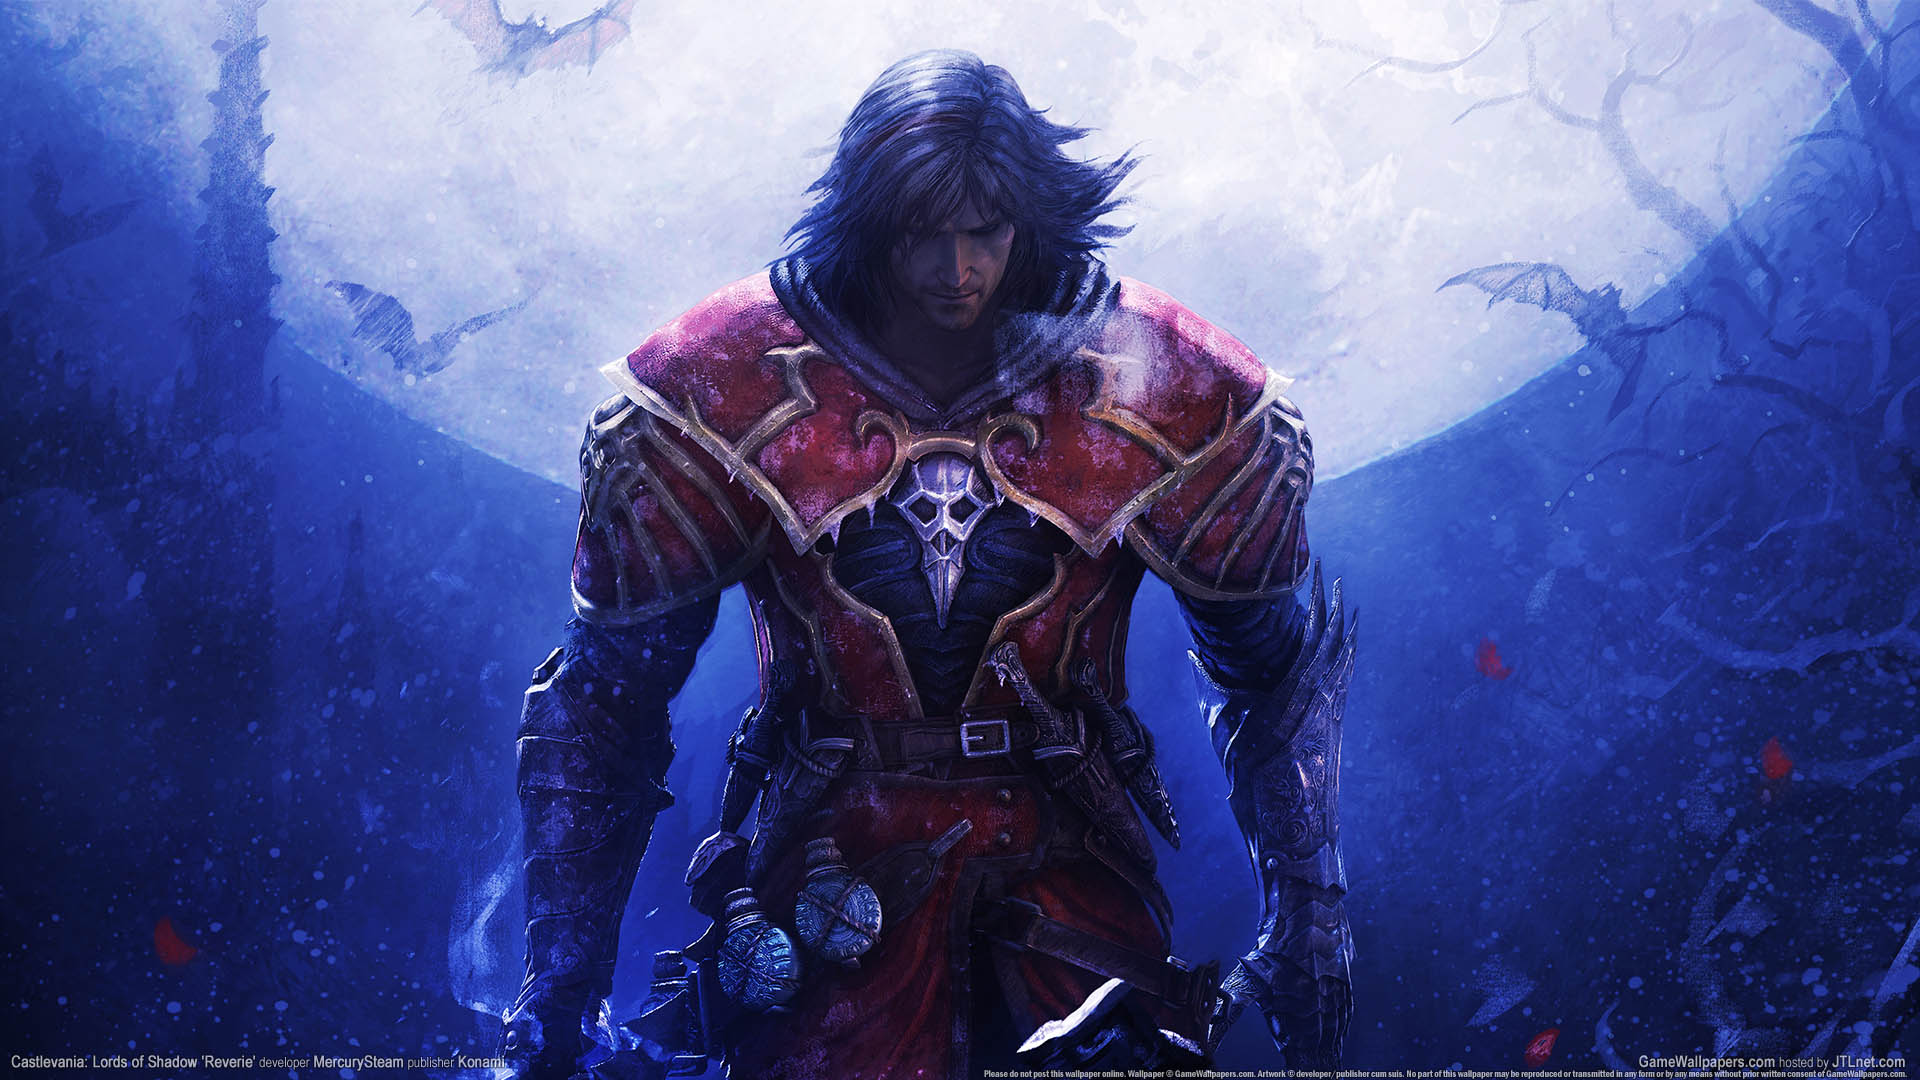 Castlevania: Lords of Shadow Reverie achtergrond 01 1920x1080